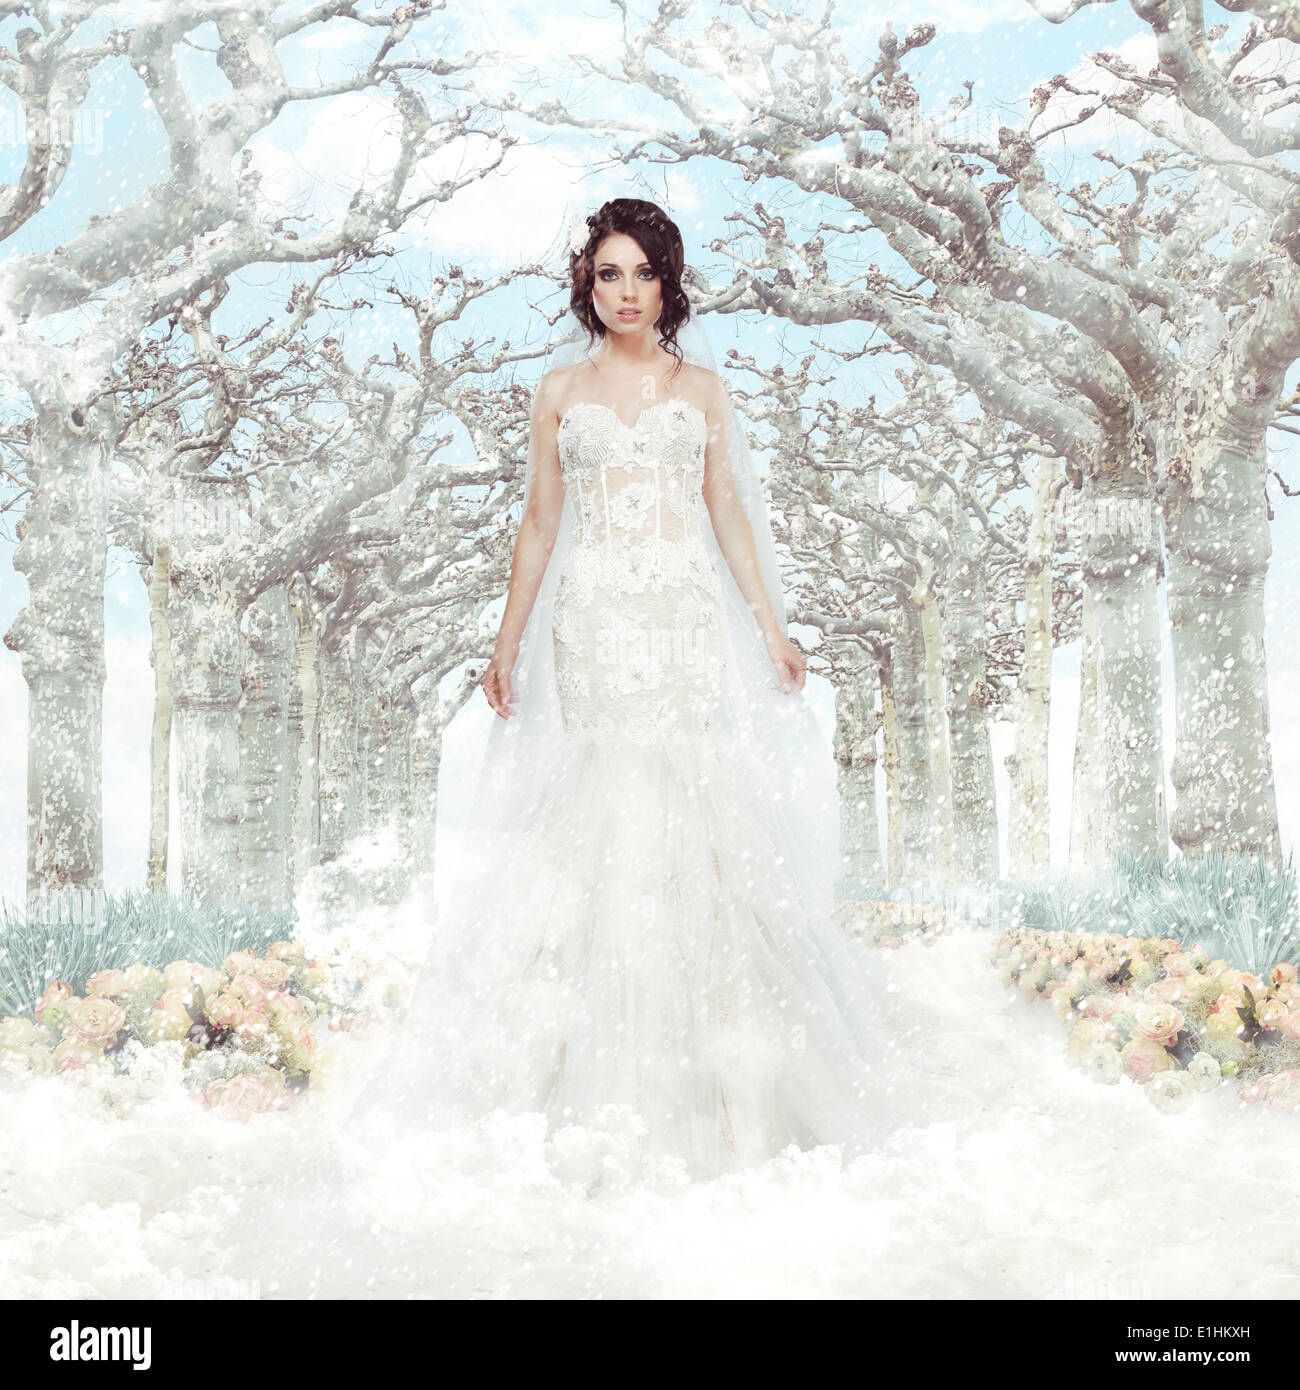 Fantasy. Matrimony. Bride in White Dress over Frozen Winter Trees and Snowflakes - Stock Image